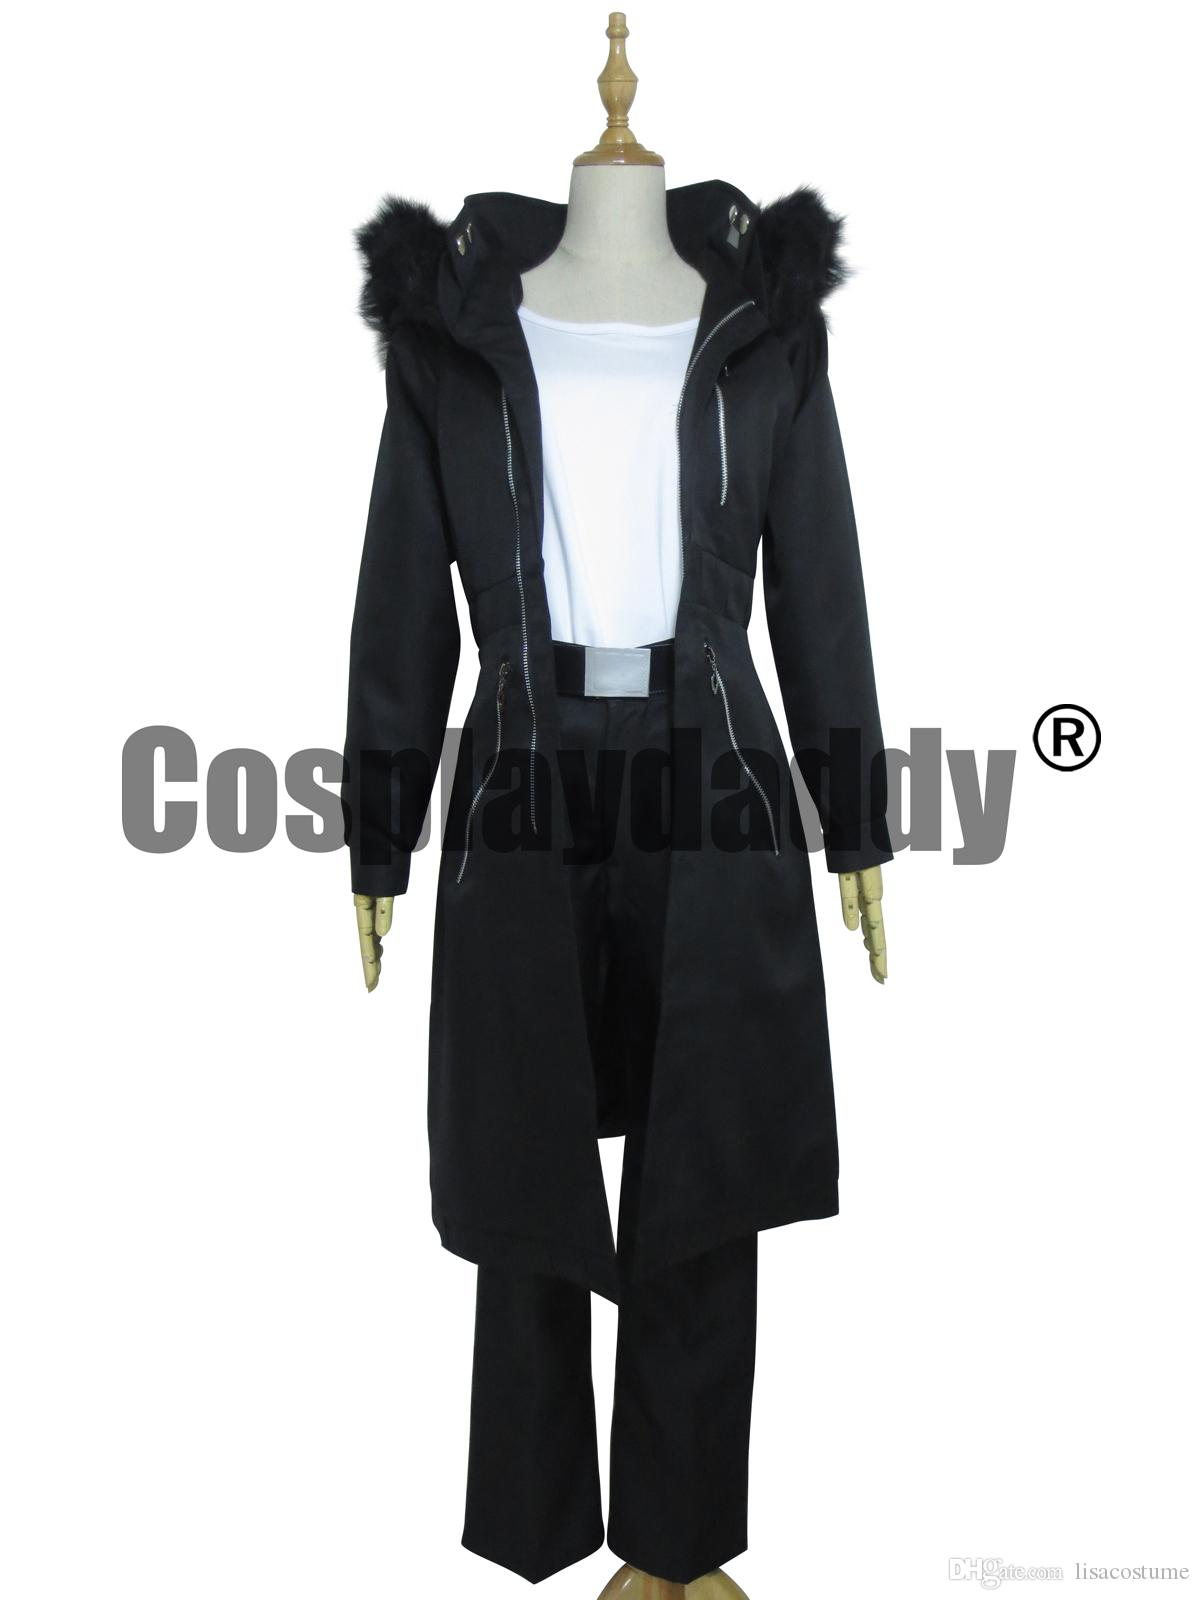 Dangan Ronpa Juzo Sakakura Black Halloween Suit Cosplay Costume Adult Costumes Sydney Easy Cosplay Costumes For Men From Lisacostume $85.43| Dhgate.Com  sc 1 st  DHgate.com & Dangan Ronpa Juzo Sakakura Black Halloween Suit Cosplay Costume ...